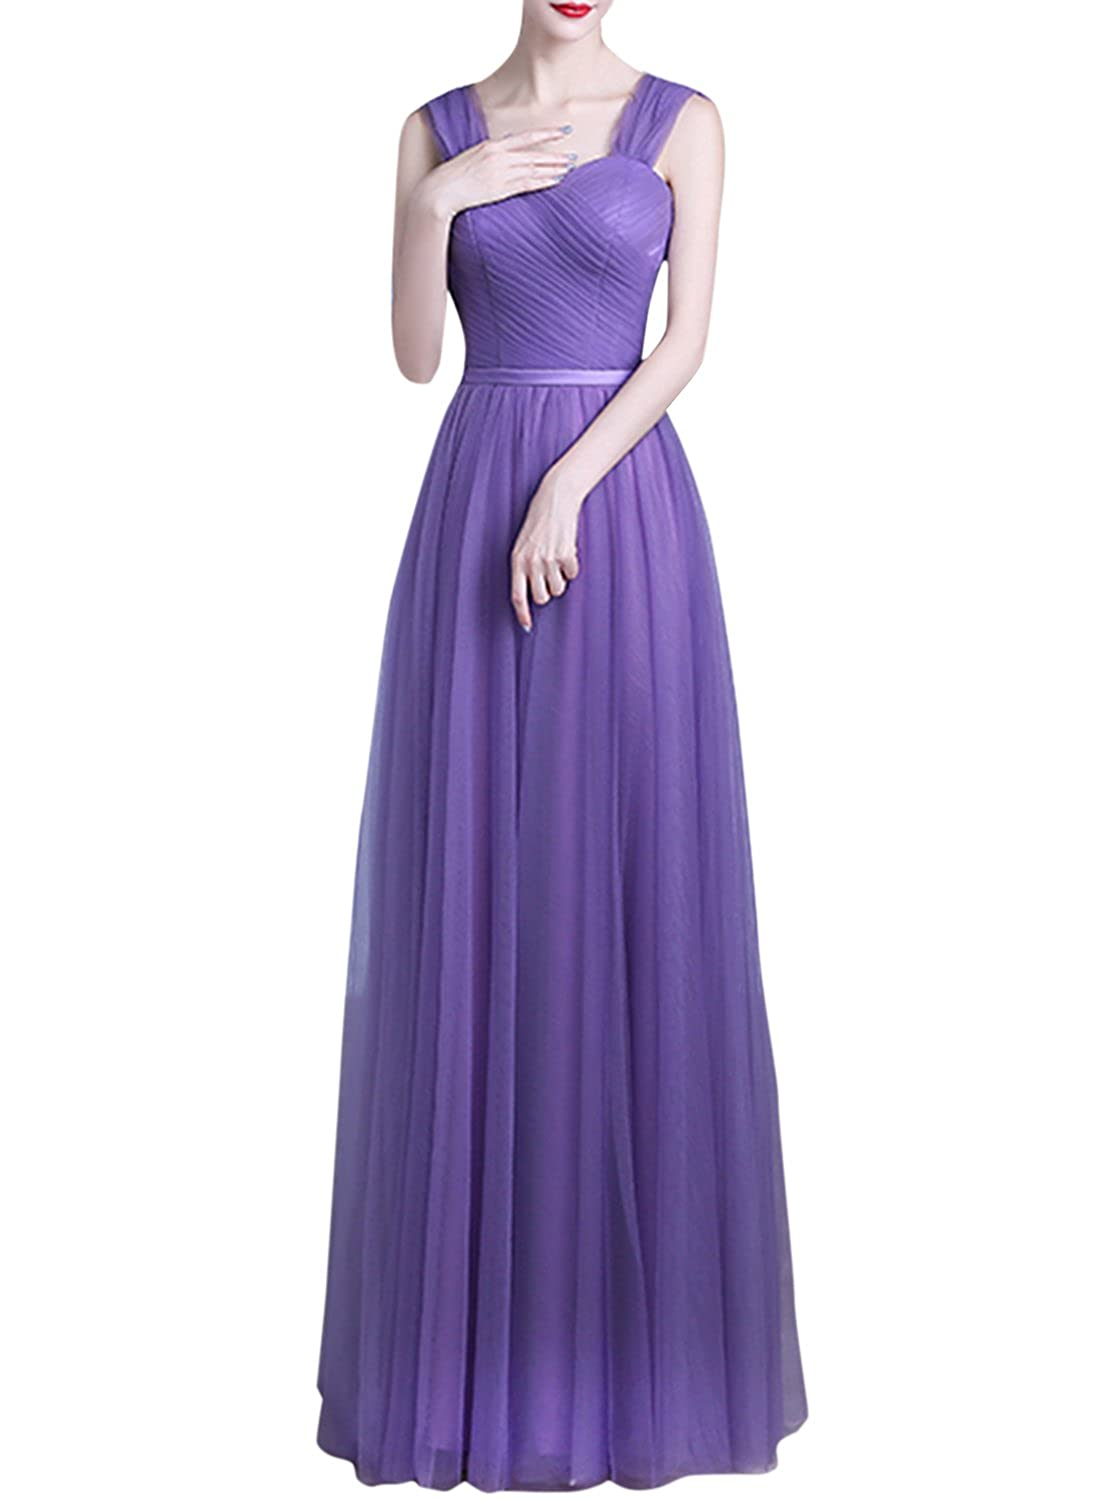 Azbro Women's Elegant Solid Color Mesh Prom Dress